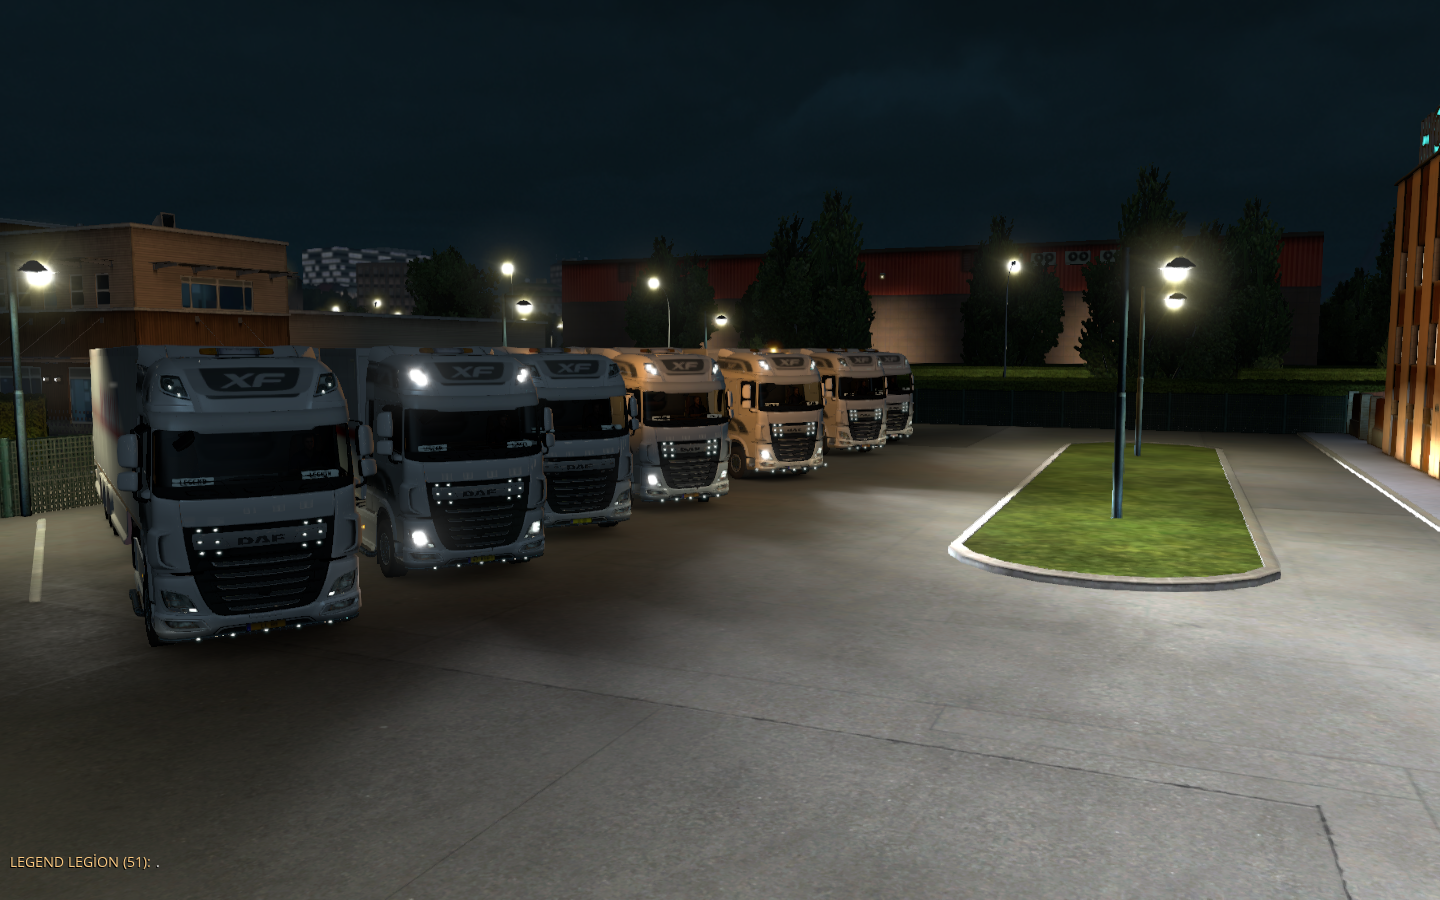 ets2_20181221_221035_00.png